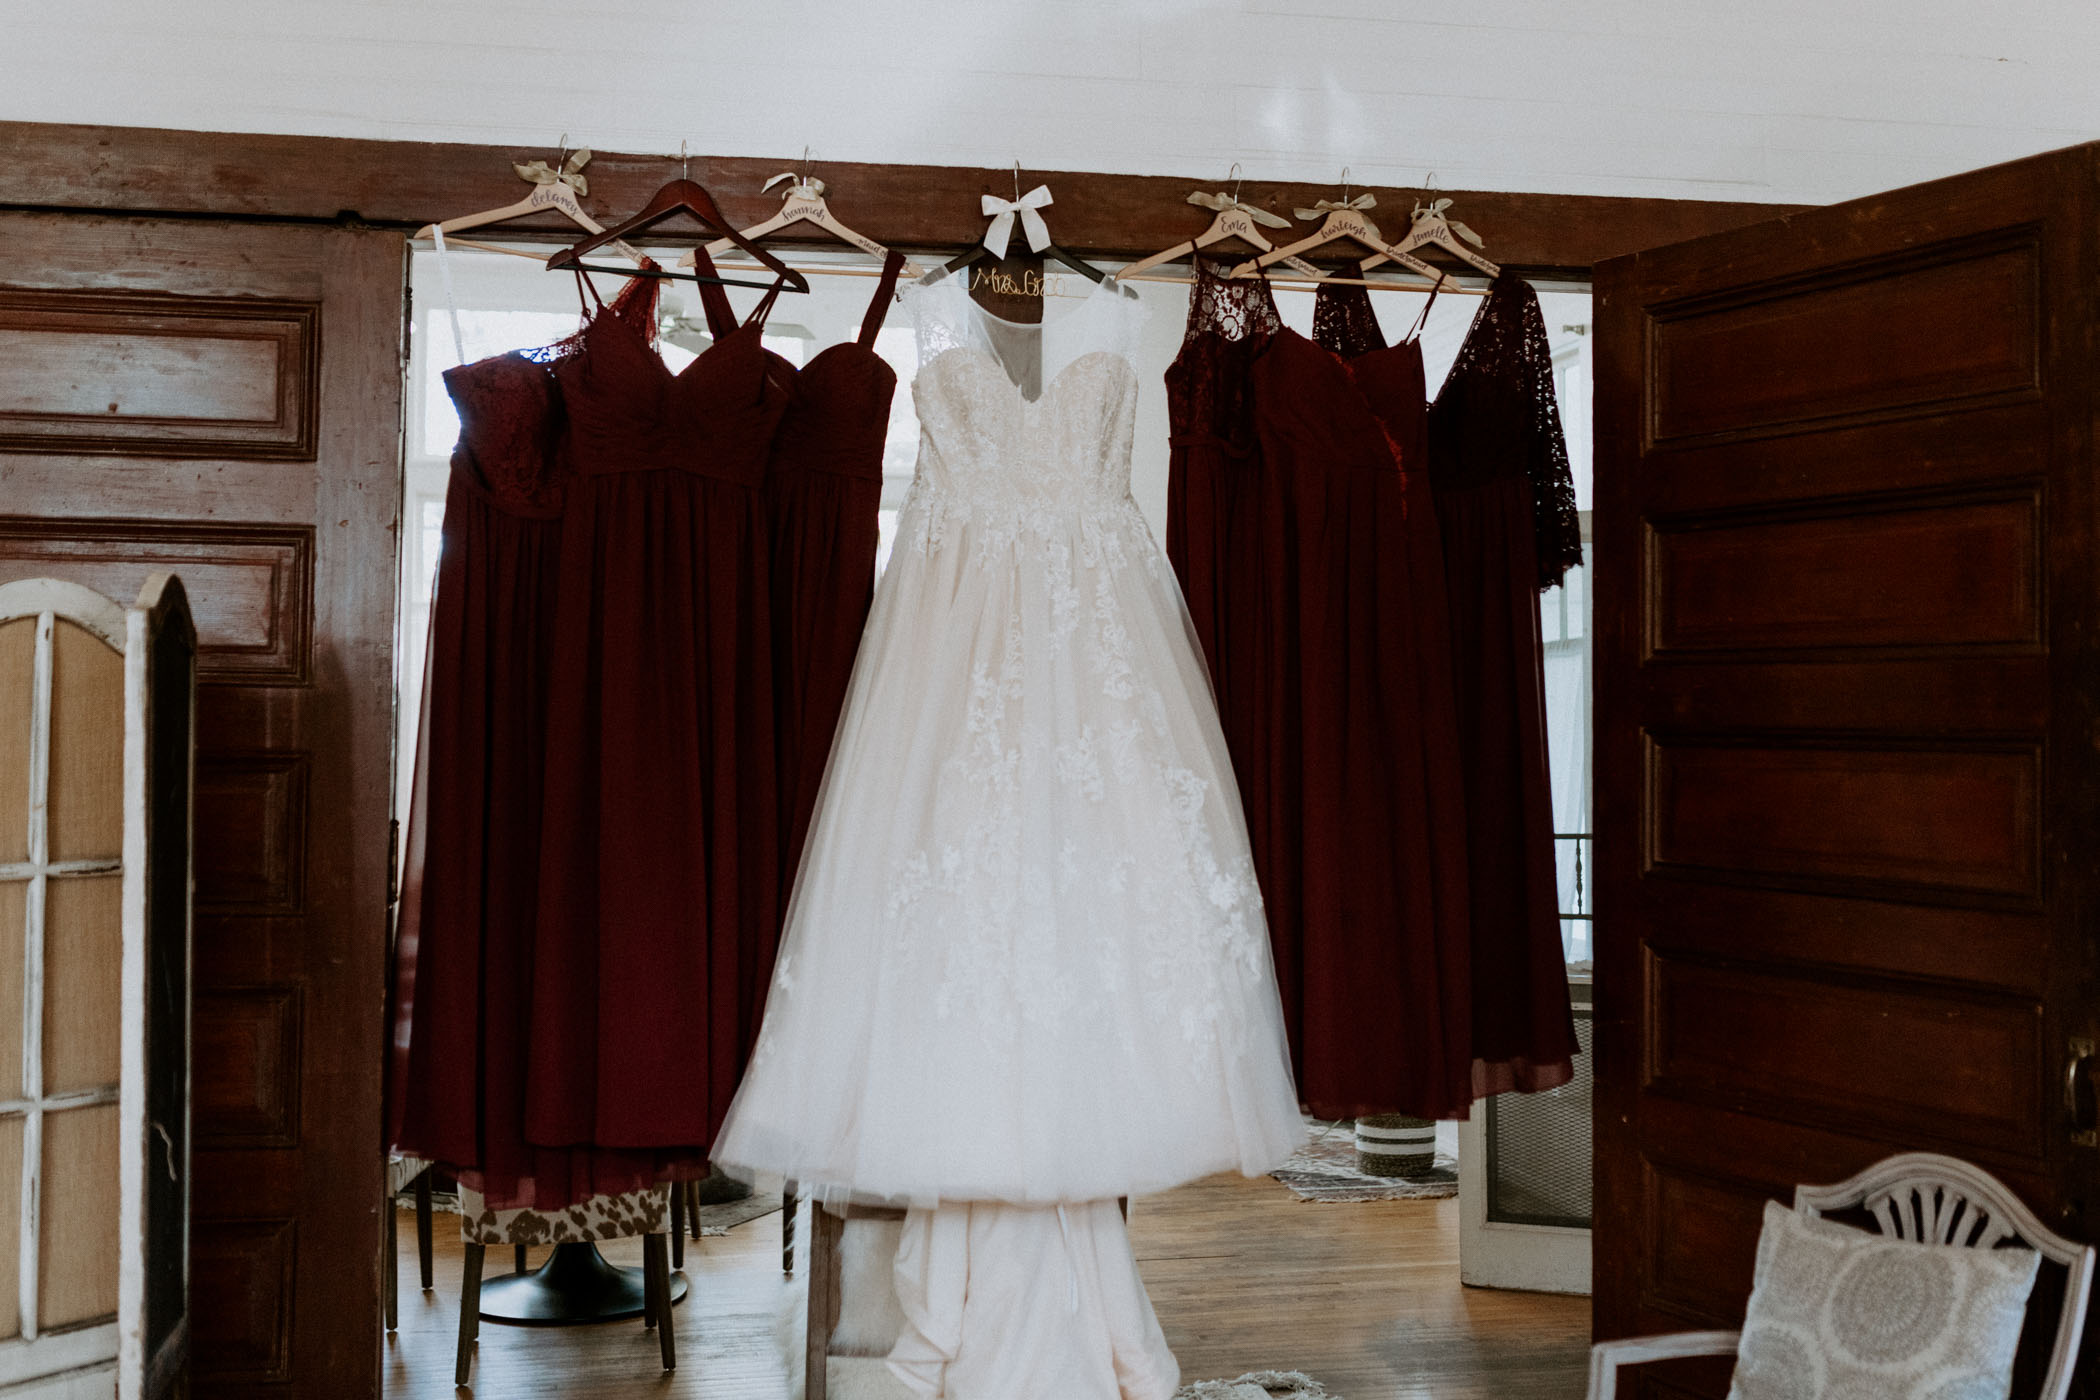 Bride and bridesmaids wedding dresses hanging up in getting ready room